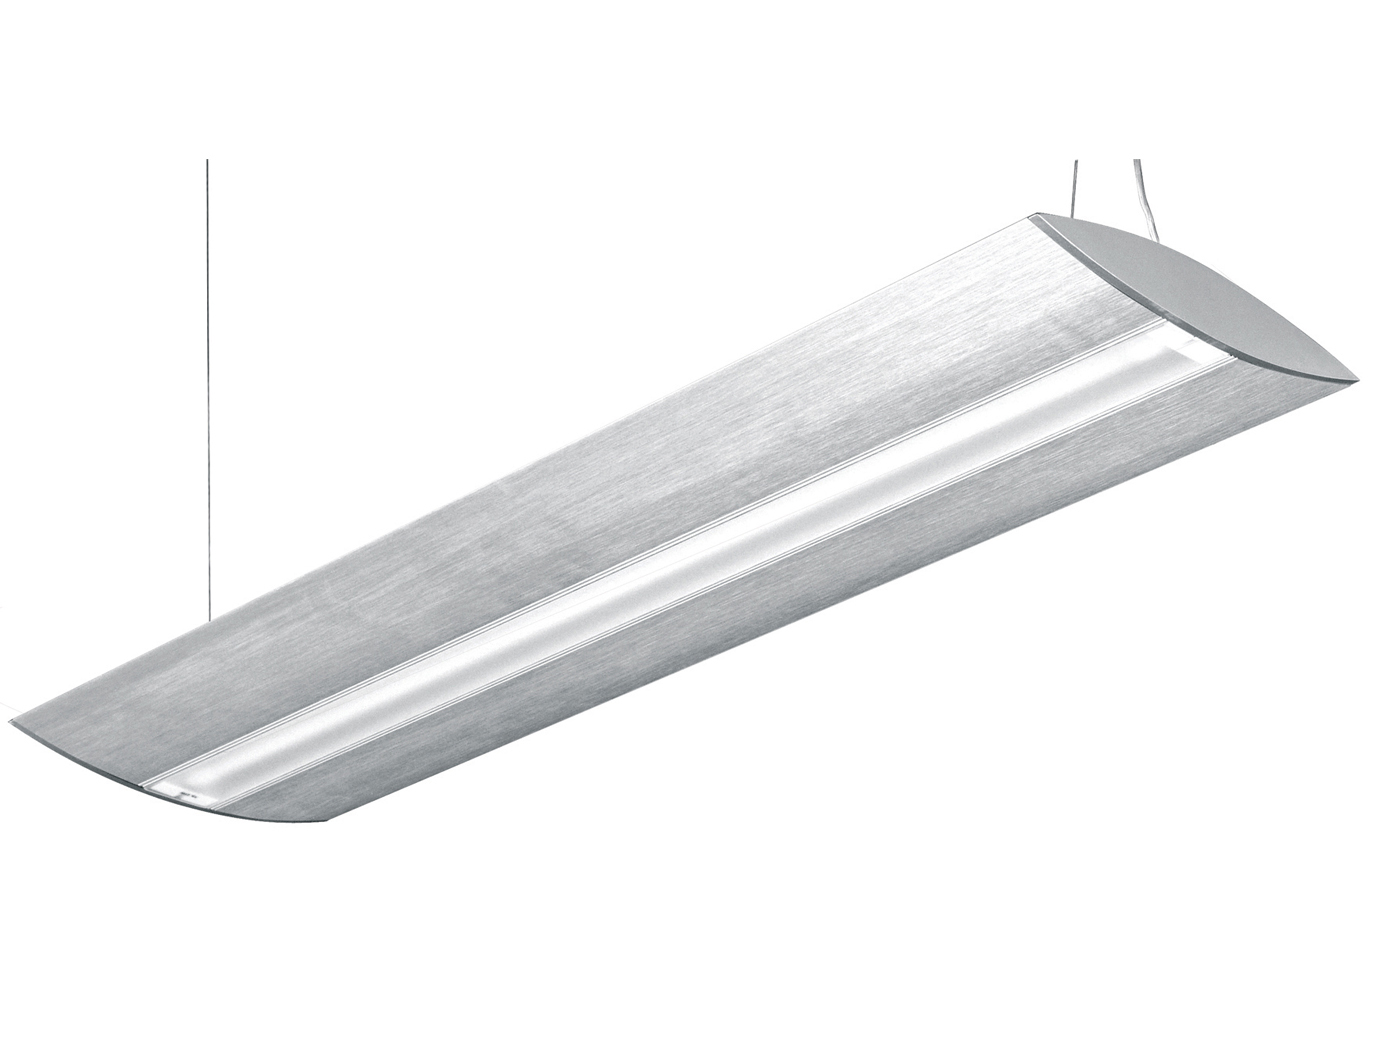 Design pendelleuchte eckig metall optik halogen for Lange deckenlampe